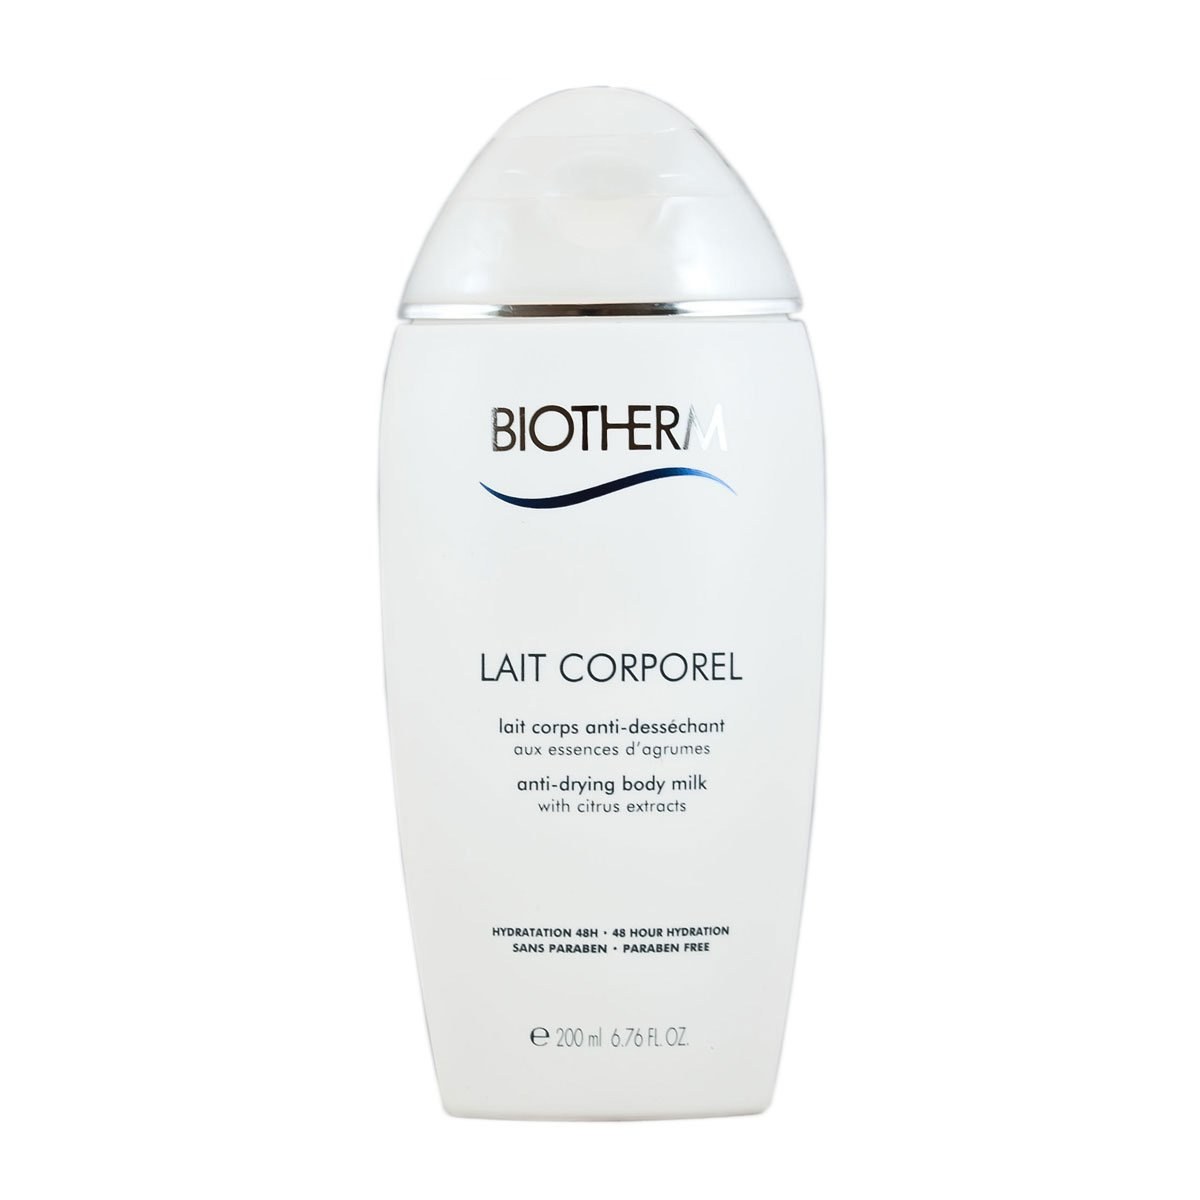 Biotherm Lait Corporel Anti-Drying Body Milk, 6.76 Ounce